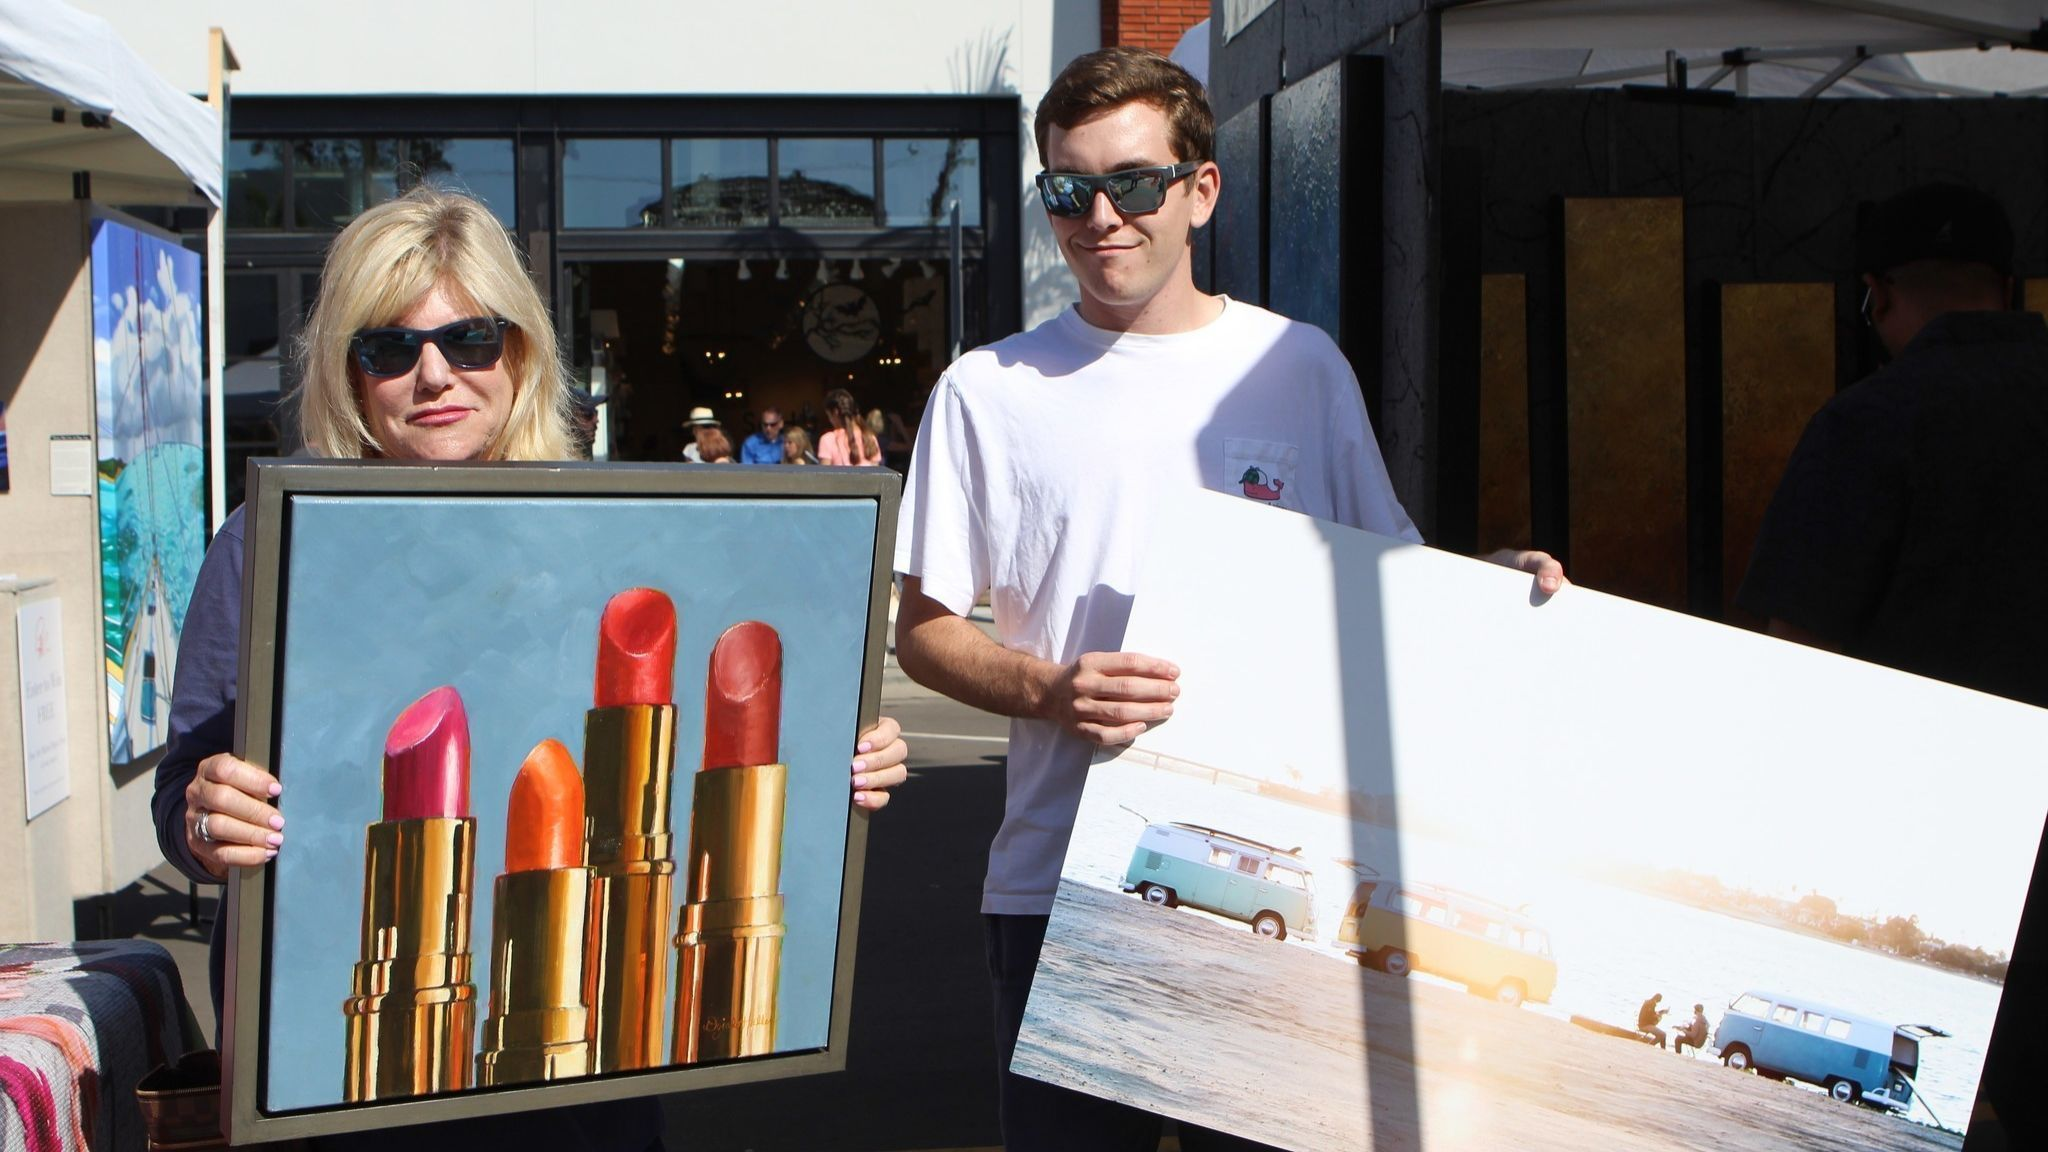 Former KFMB-TV news anchor Lorraine Hennessy poses with her son, Tom, and two pieces they purchased at the festival.